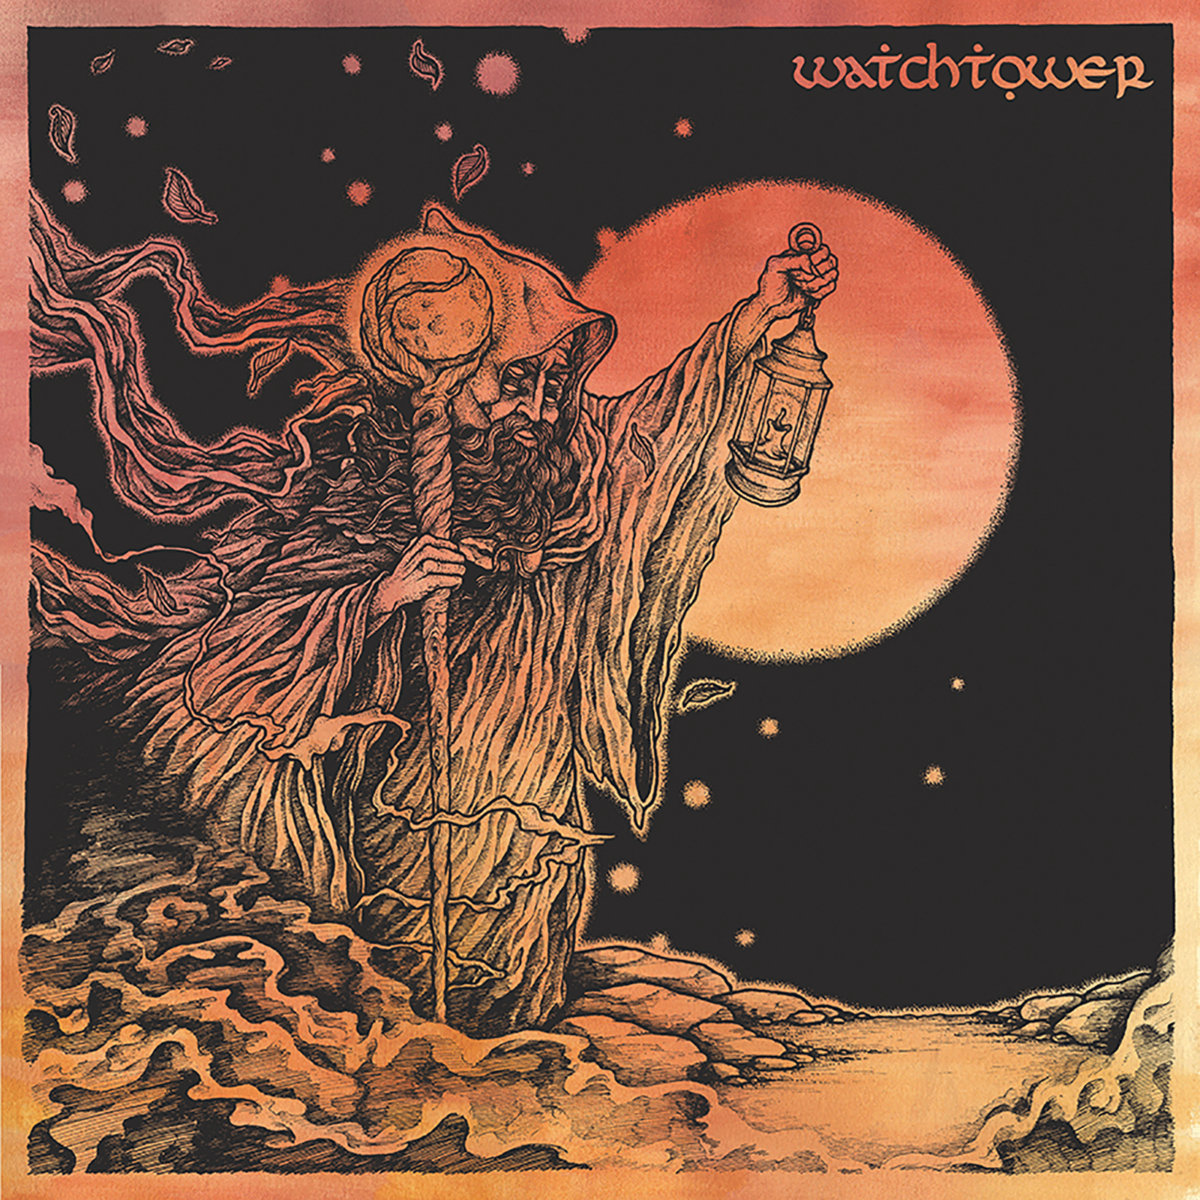 19. Watchtower - Radiant Moon